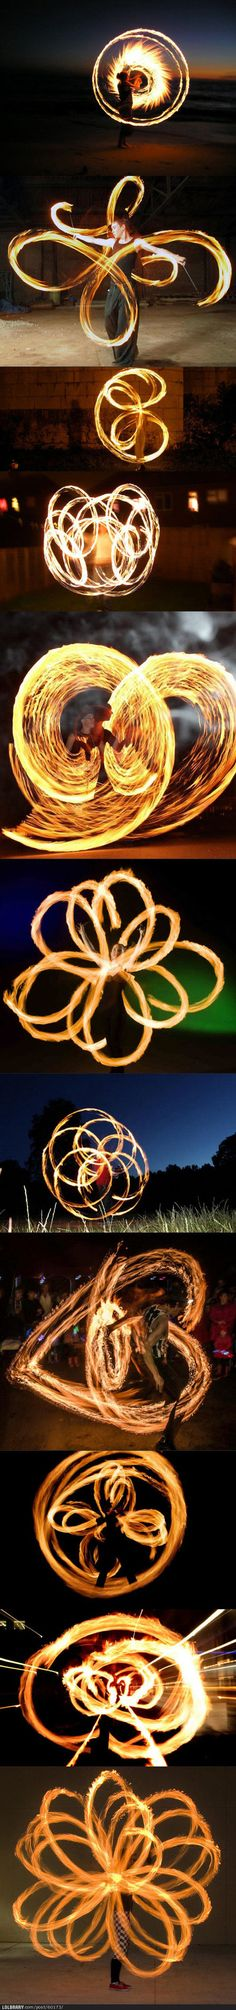 i so want to do this except maybe glow in the dark or color changing fire